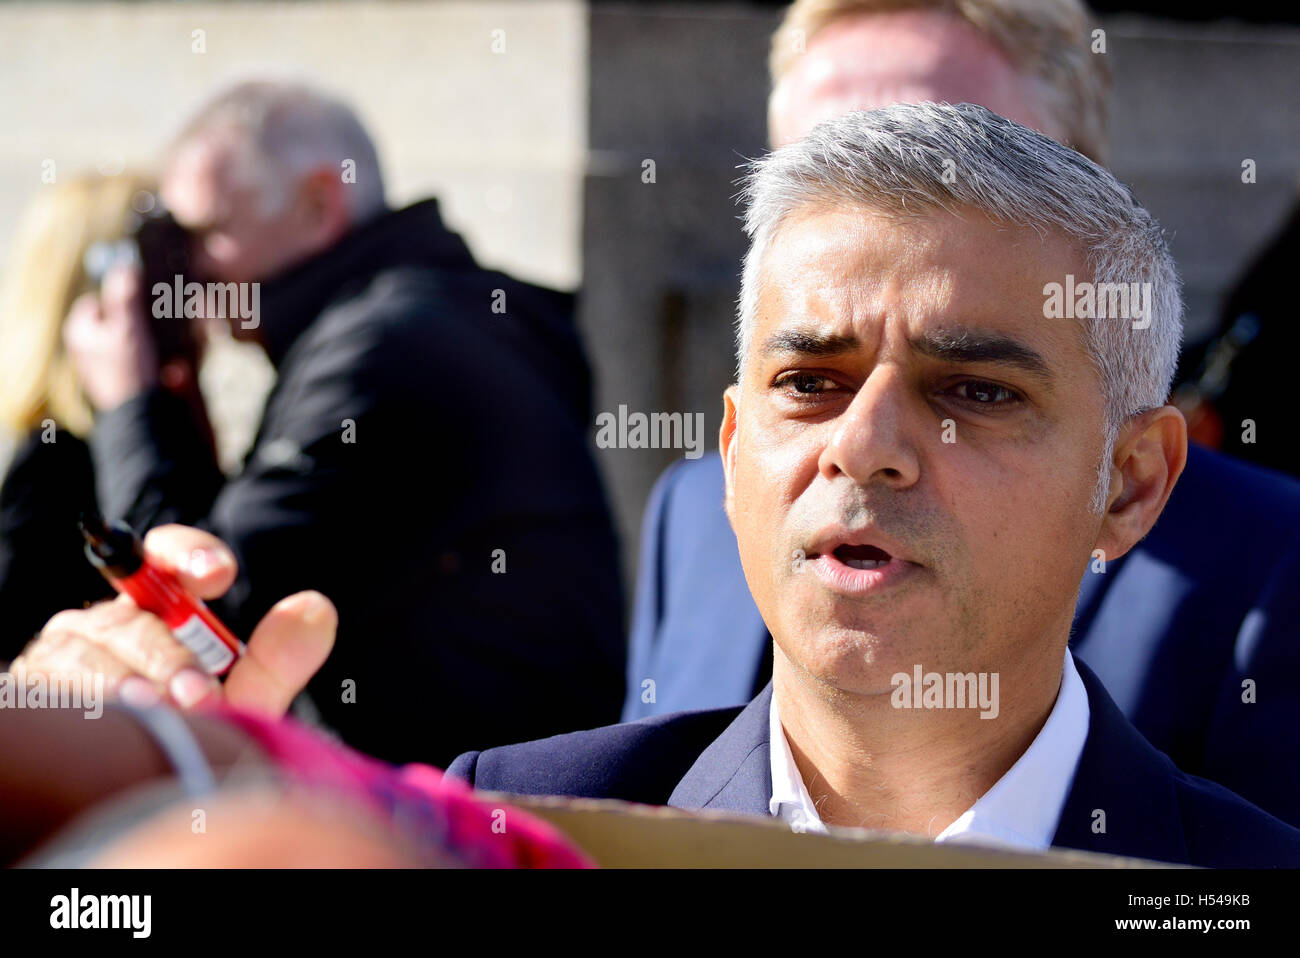 Sadiq Khan, Mayor of London, signing autographs at the Heroes Return celebration for the GB Olympic and Paralympic - Stock Image